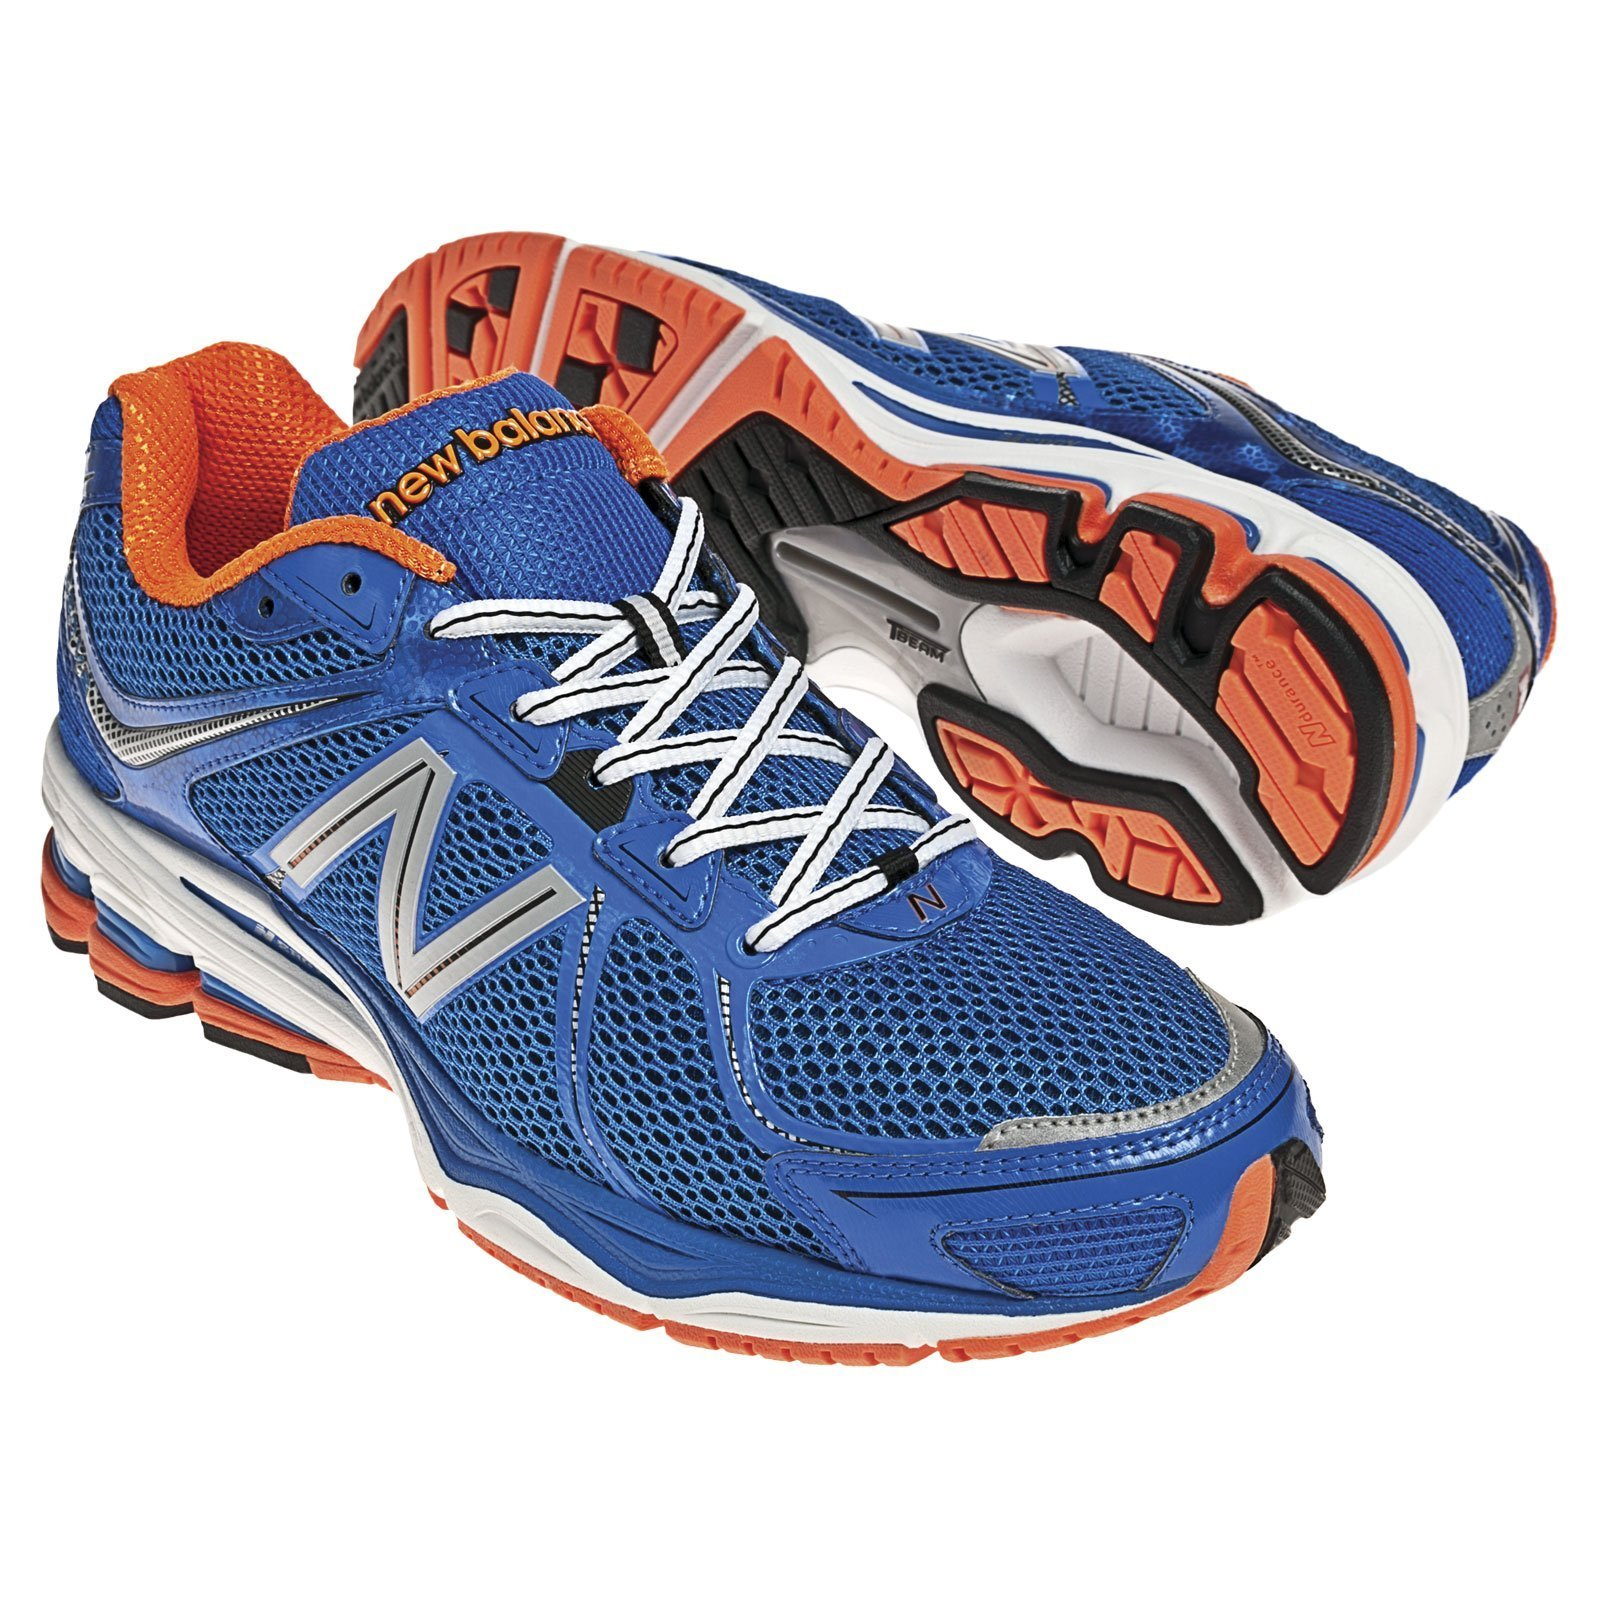 New balance nbx 880 herre fra New balance fra billigsport24